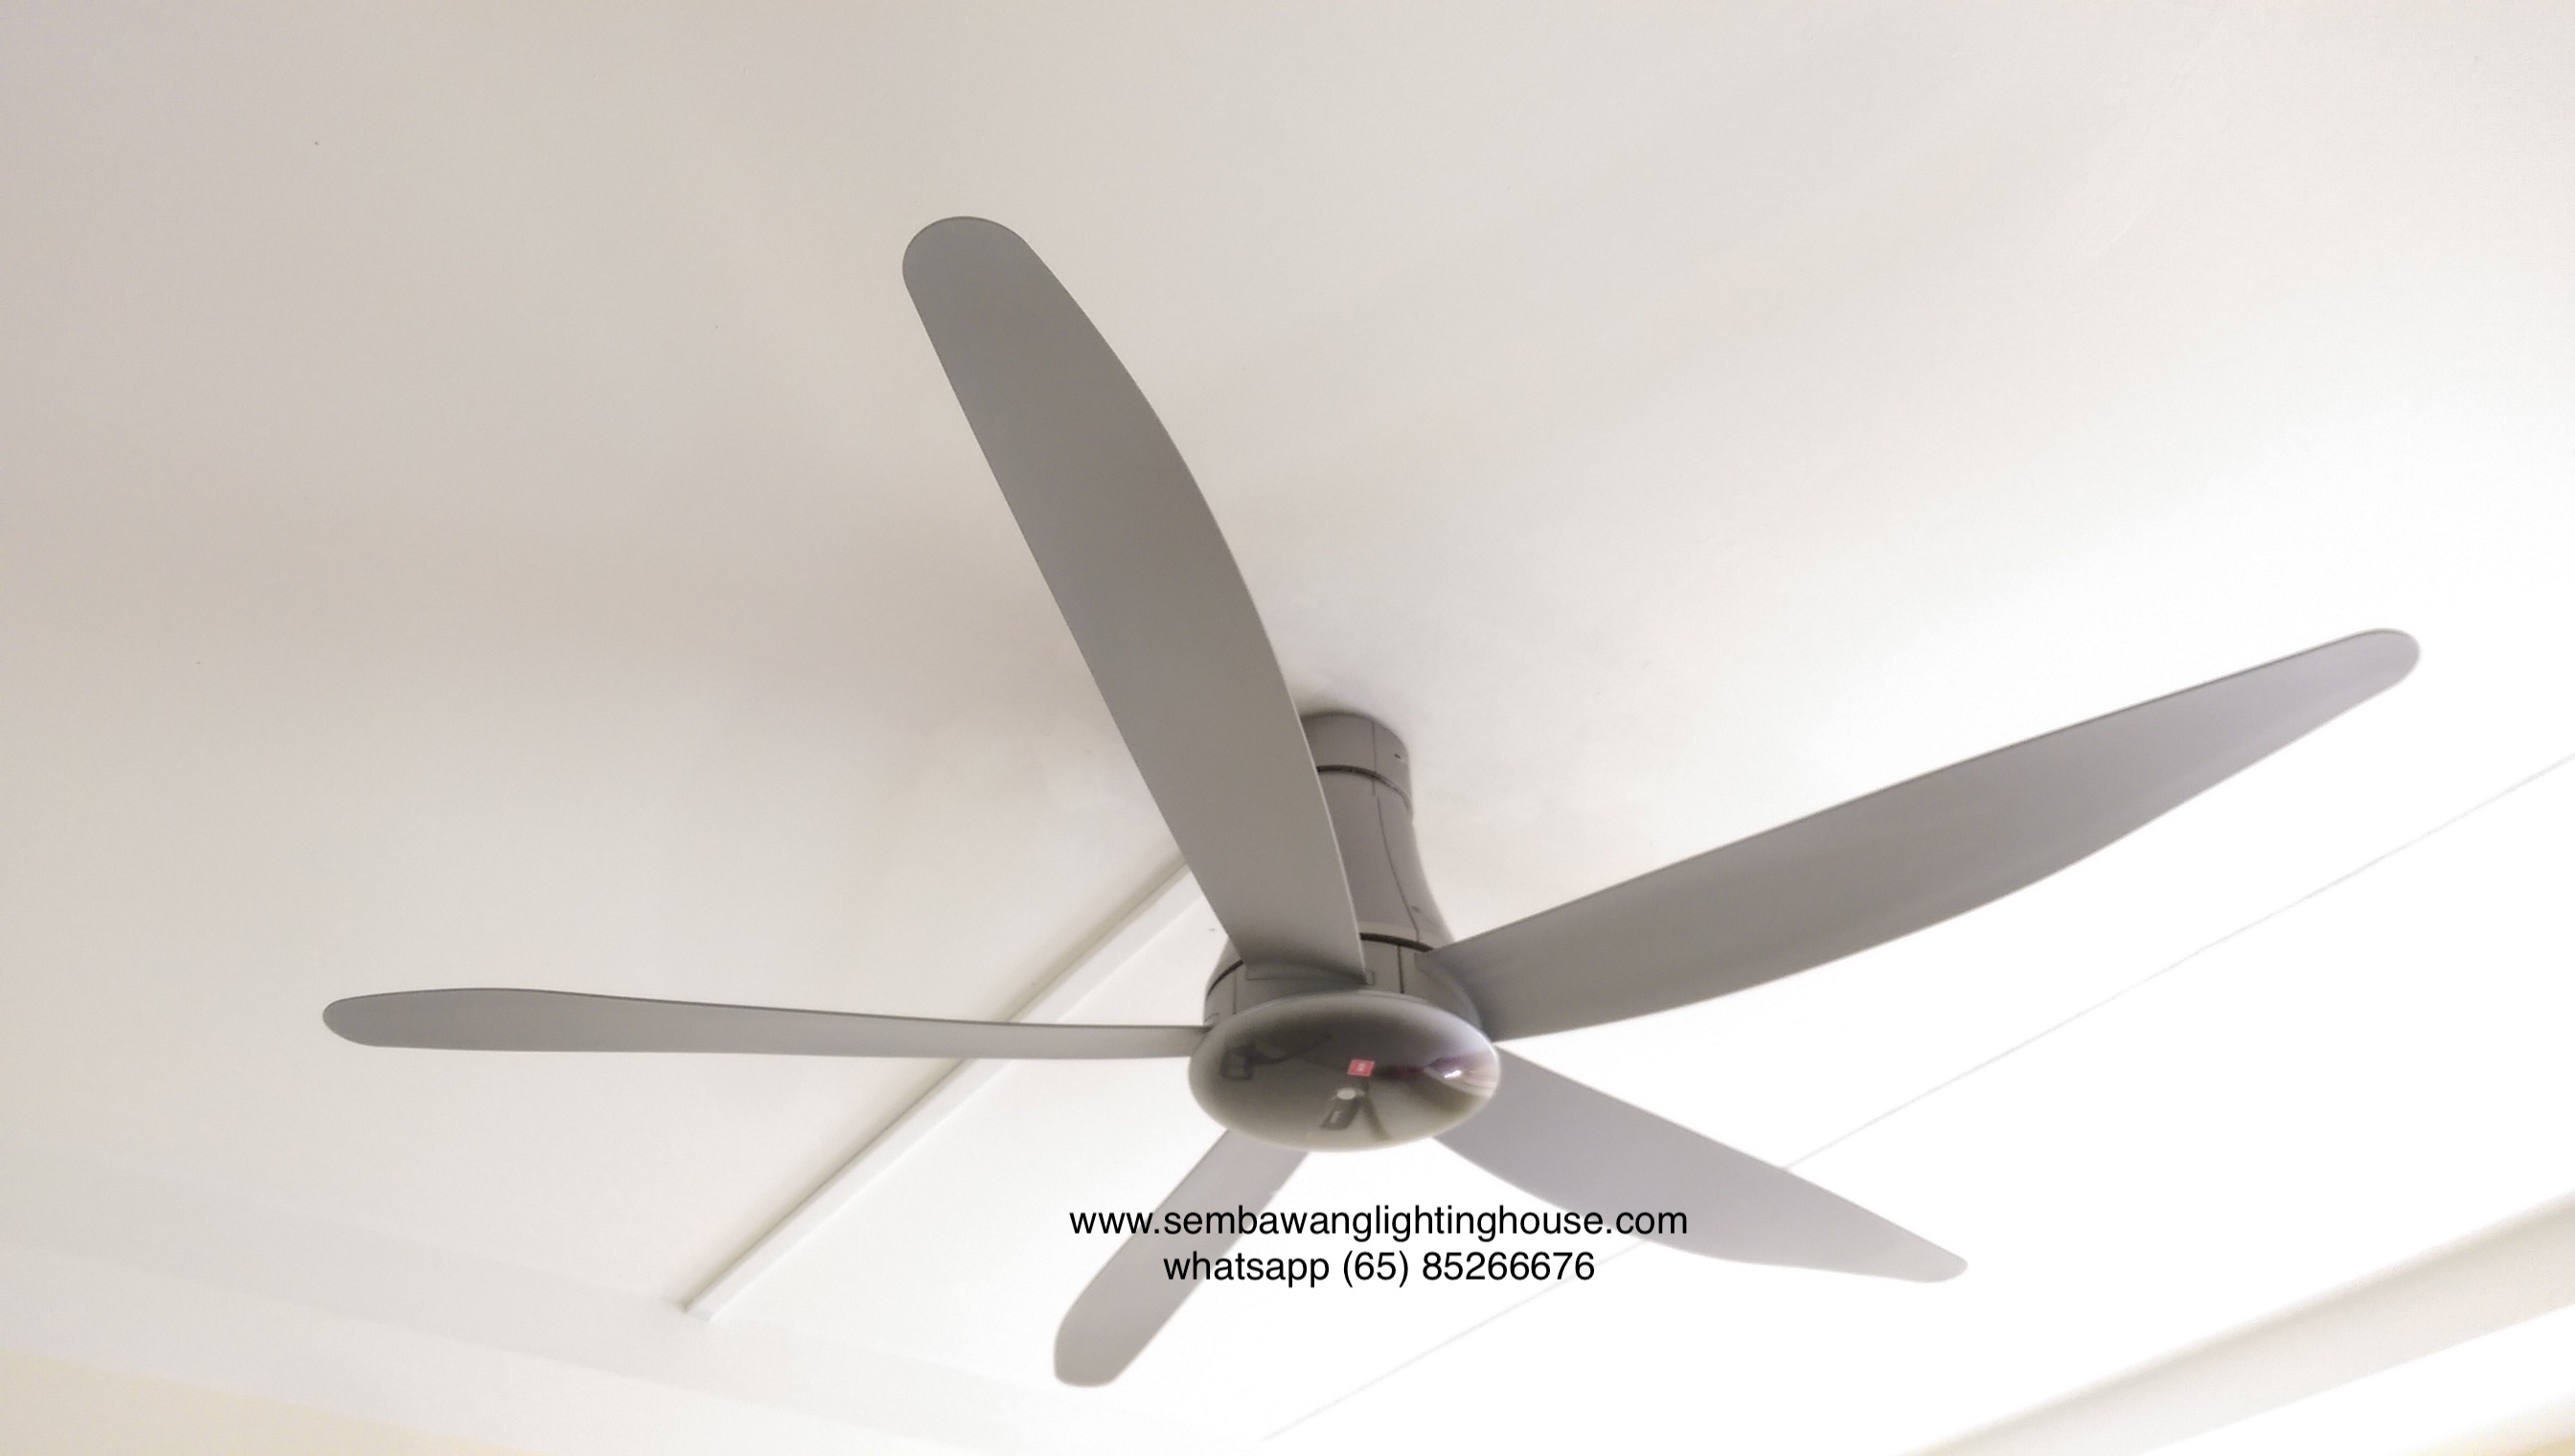 kdk-t60aw-ceiling-fan-without-light-sembawang-lighting-house-sample-03.jpg